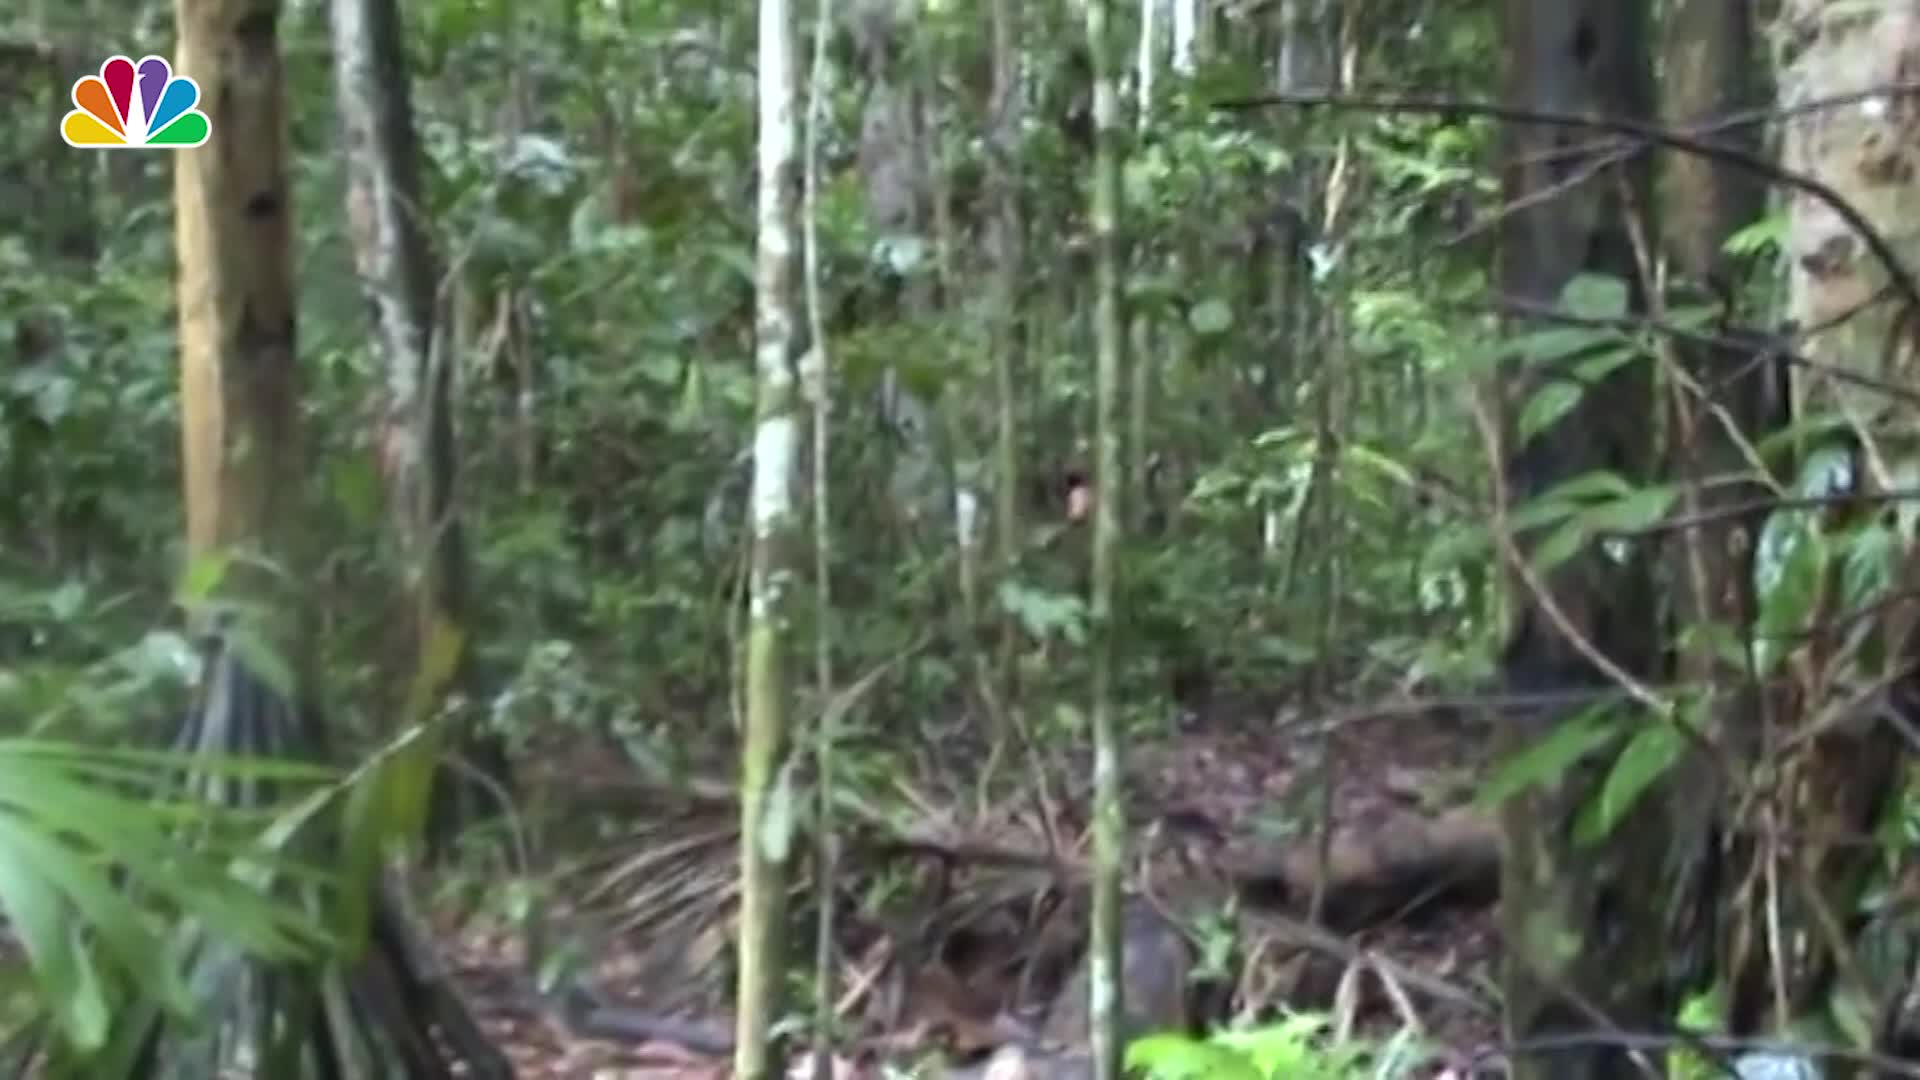 Brazilian Indigenous Man Chops Down a Tree in the Amazon Rare Footage Shows NBC 6 South Florida